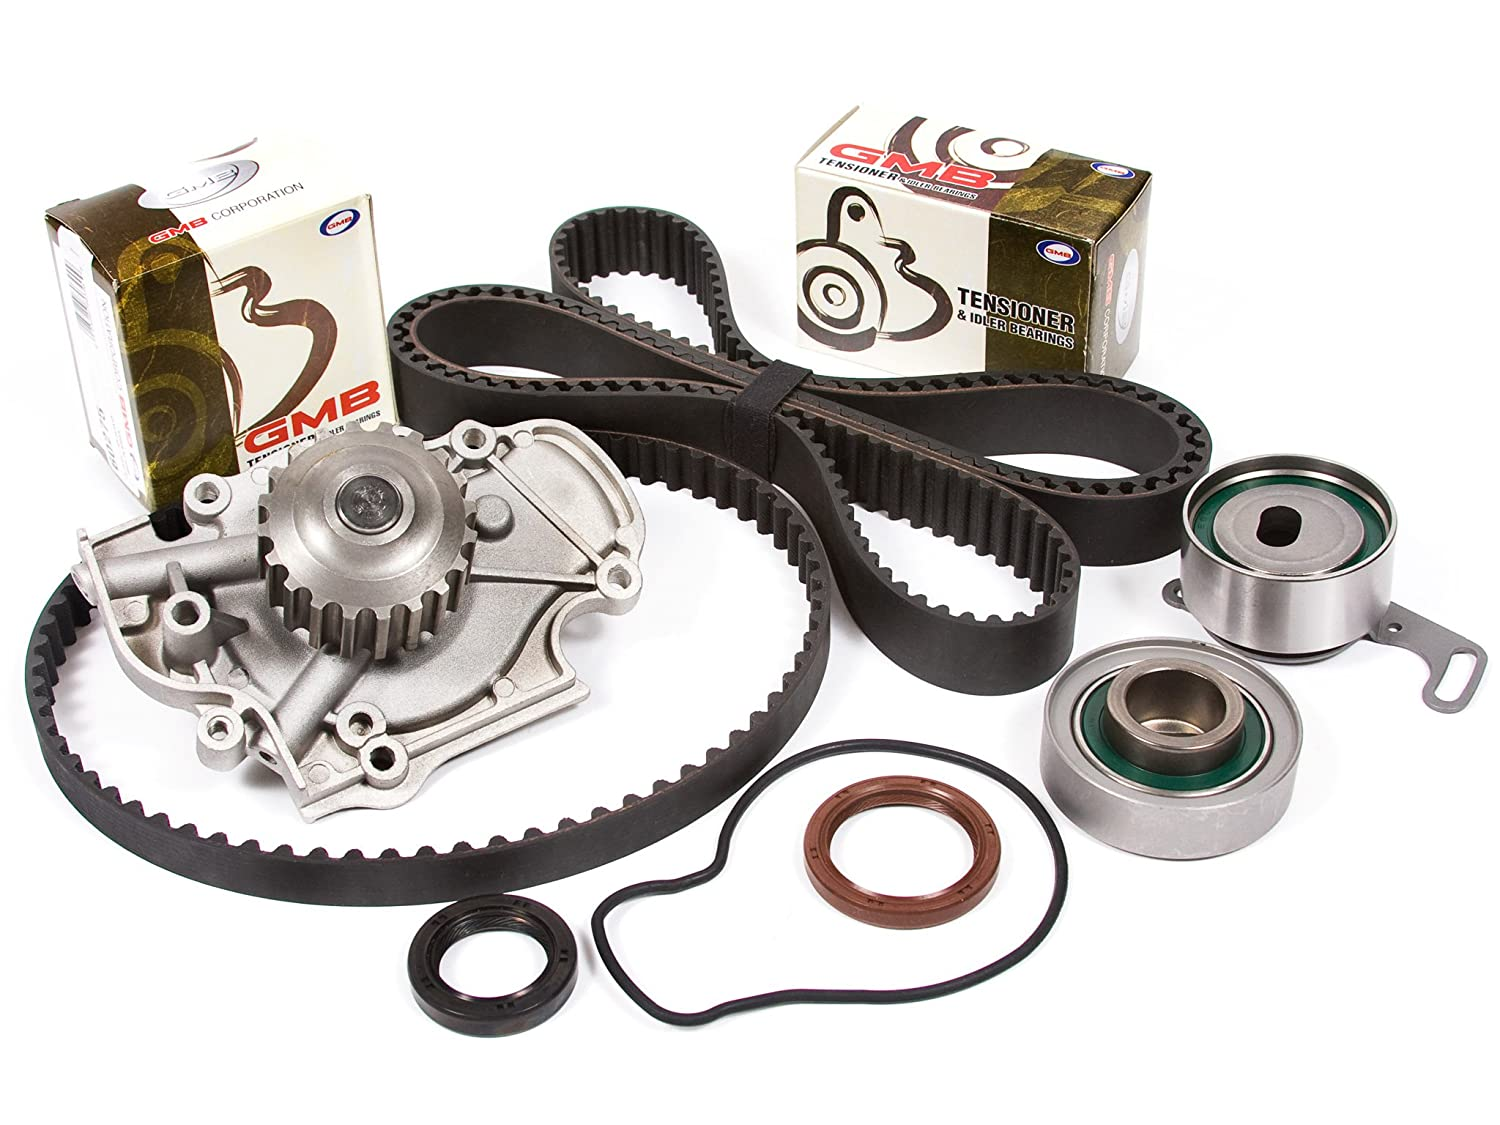 Evergreen TBK244WPT 94-02 Acura CL Honda Accord Odyssey Isuzu Oasis 2.2 2.3 F22B1 F23A1 F23A4 F23A5 F23A7 Timing Belt Kit Water Pump Evergreen Parts And Components